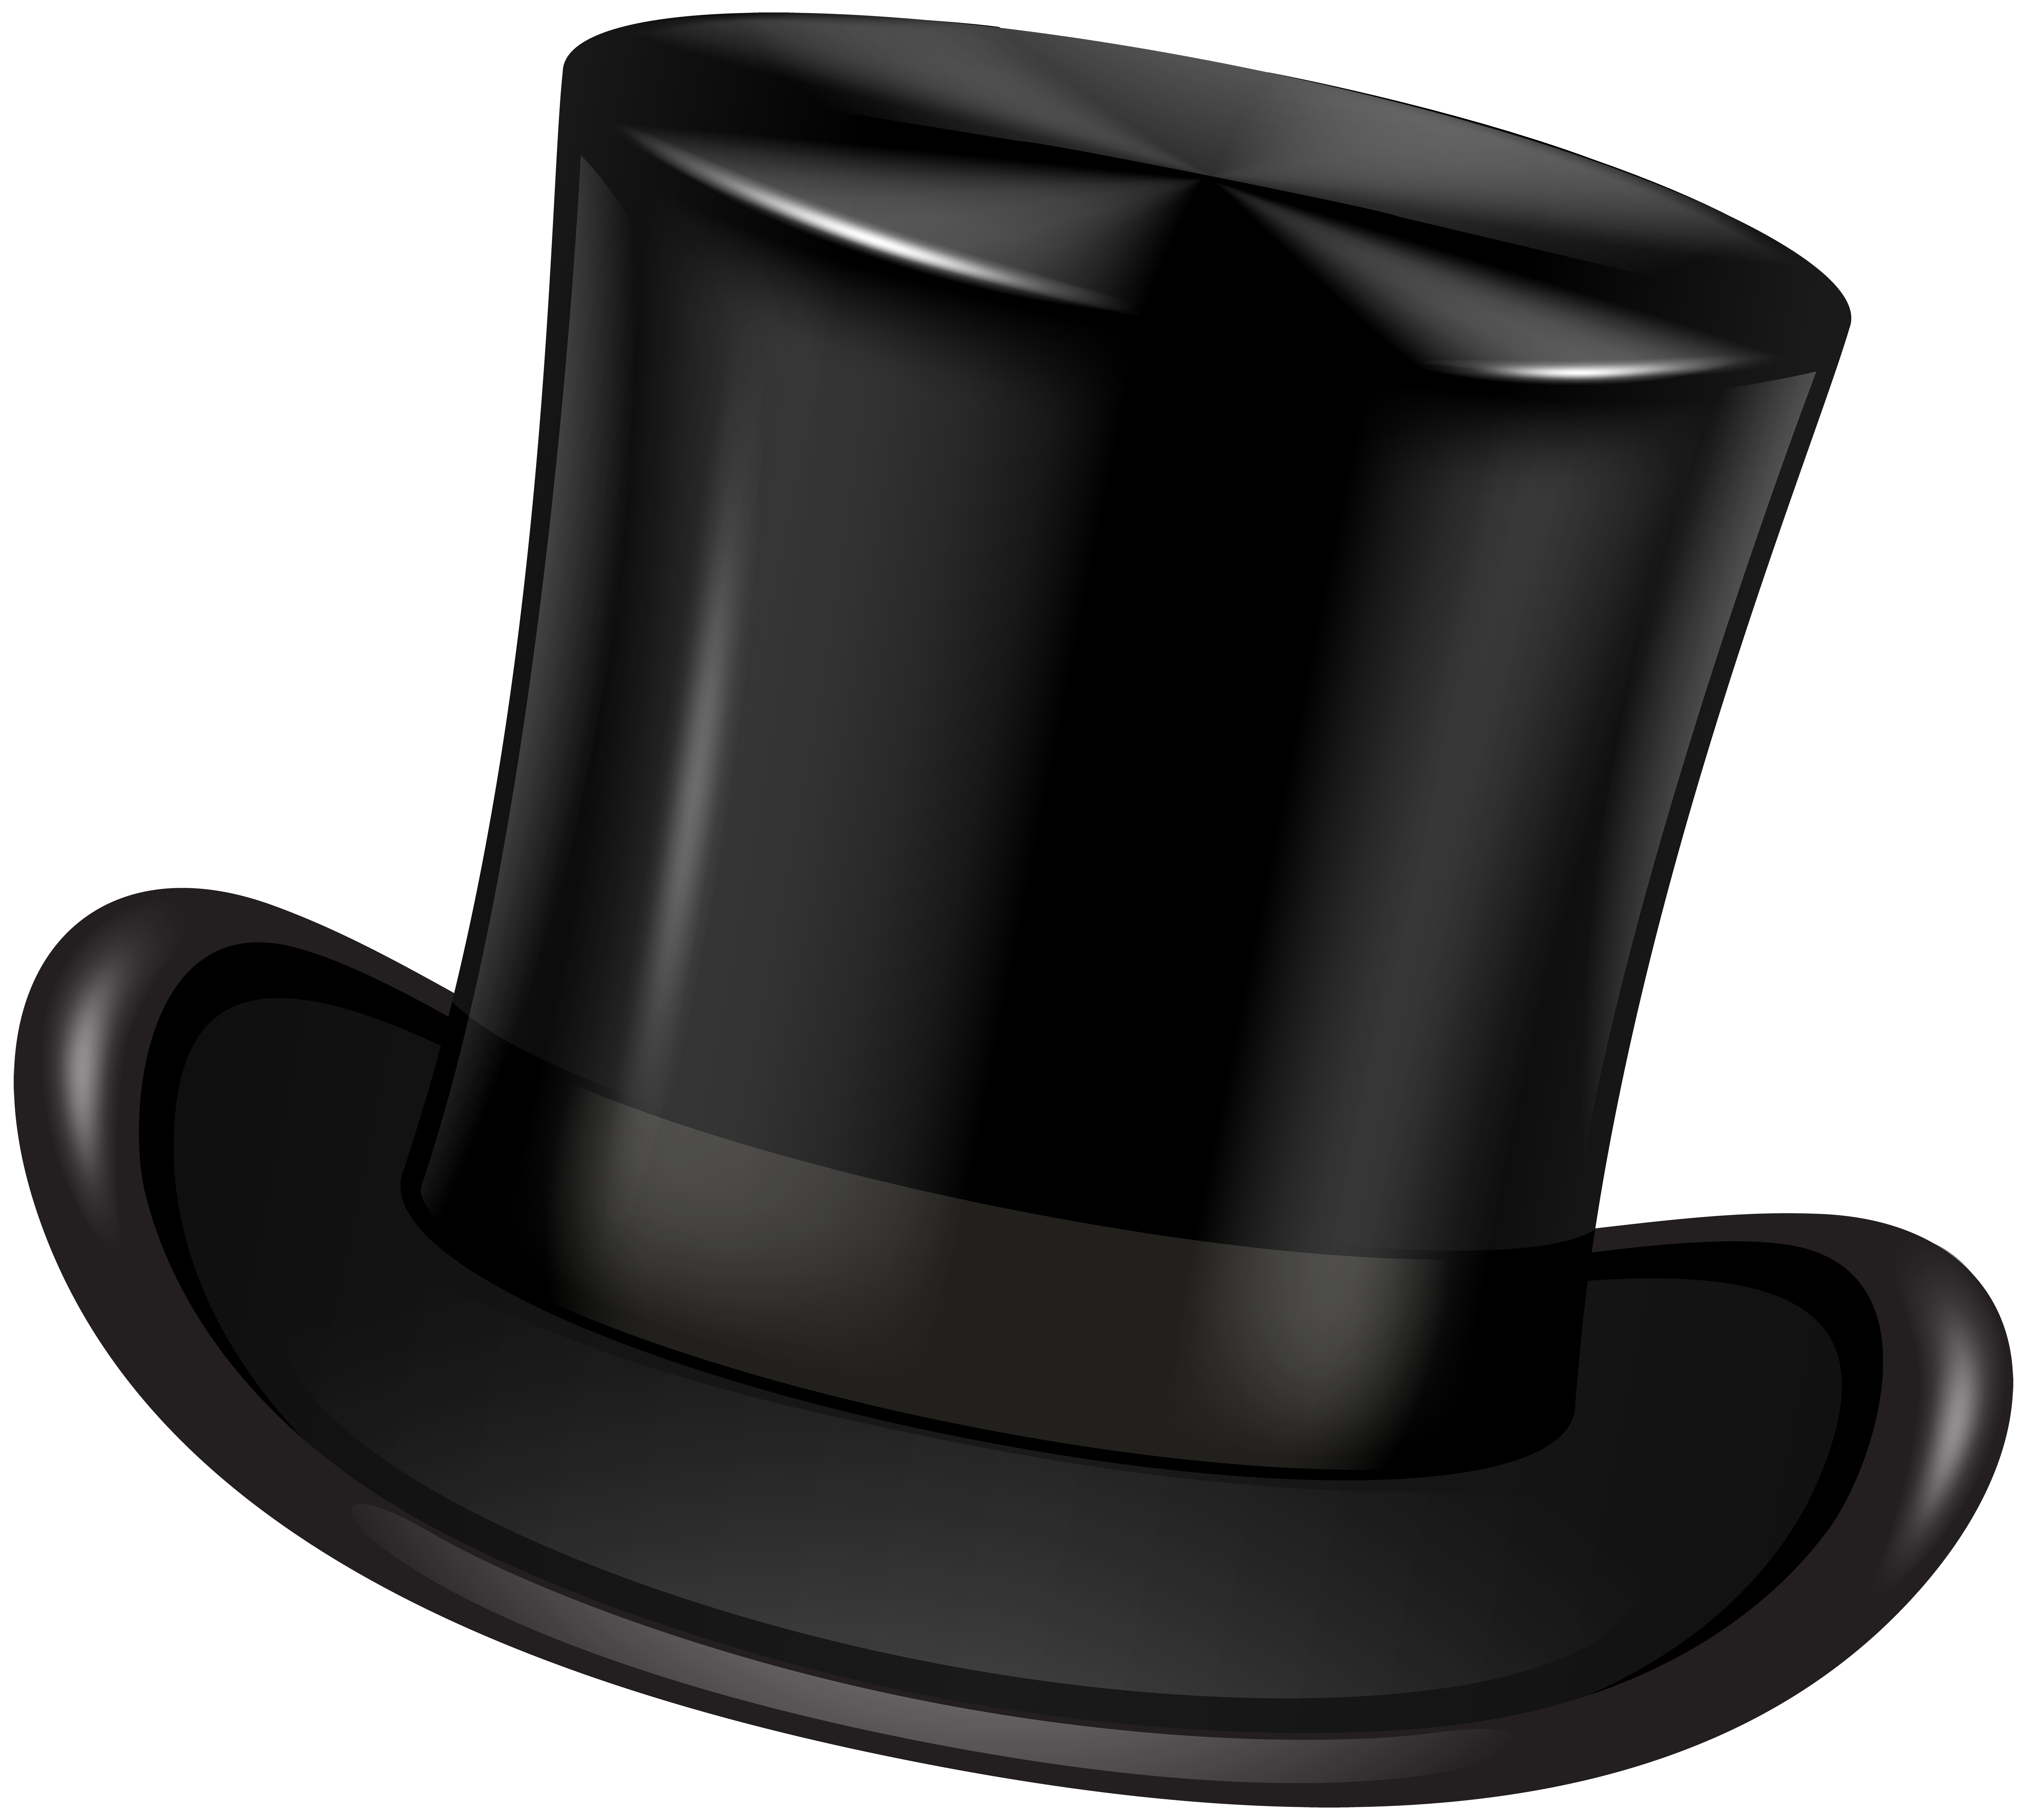 Top Hat clipart transparent View Black  Gallery Top